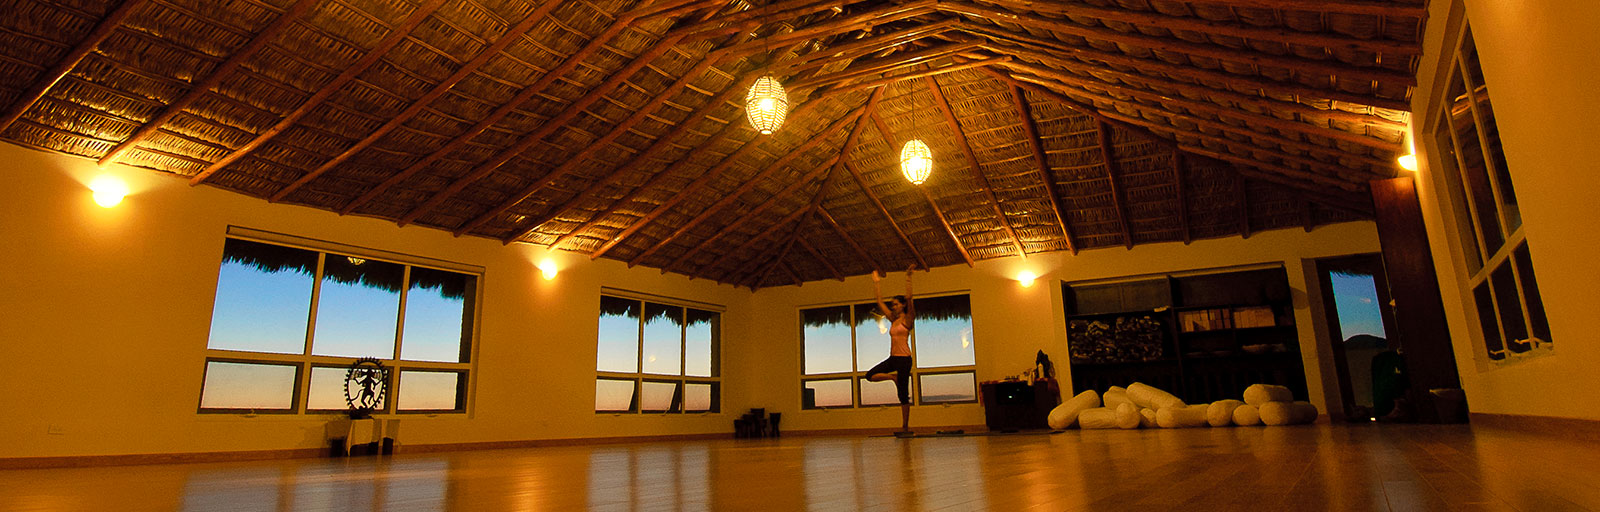 Meditation & Yoga Retreats in Mexico: Yoga Studio at Night